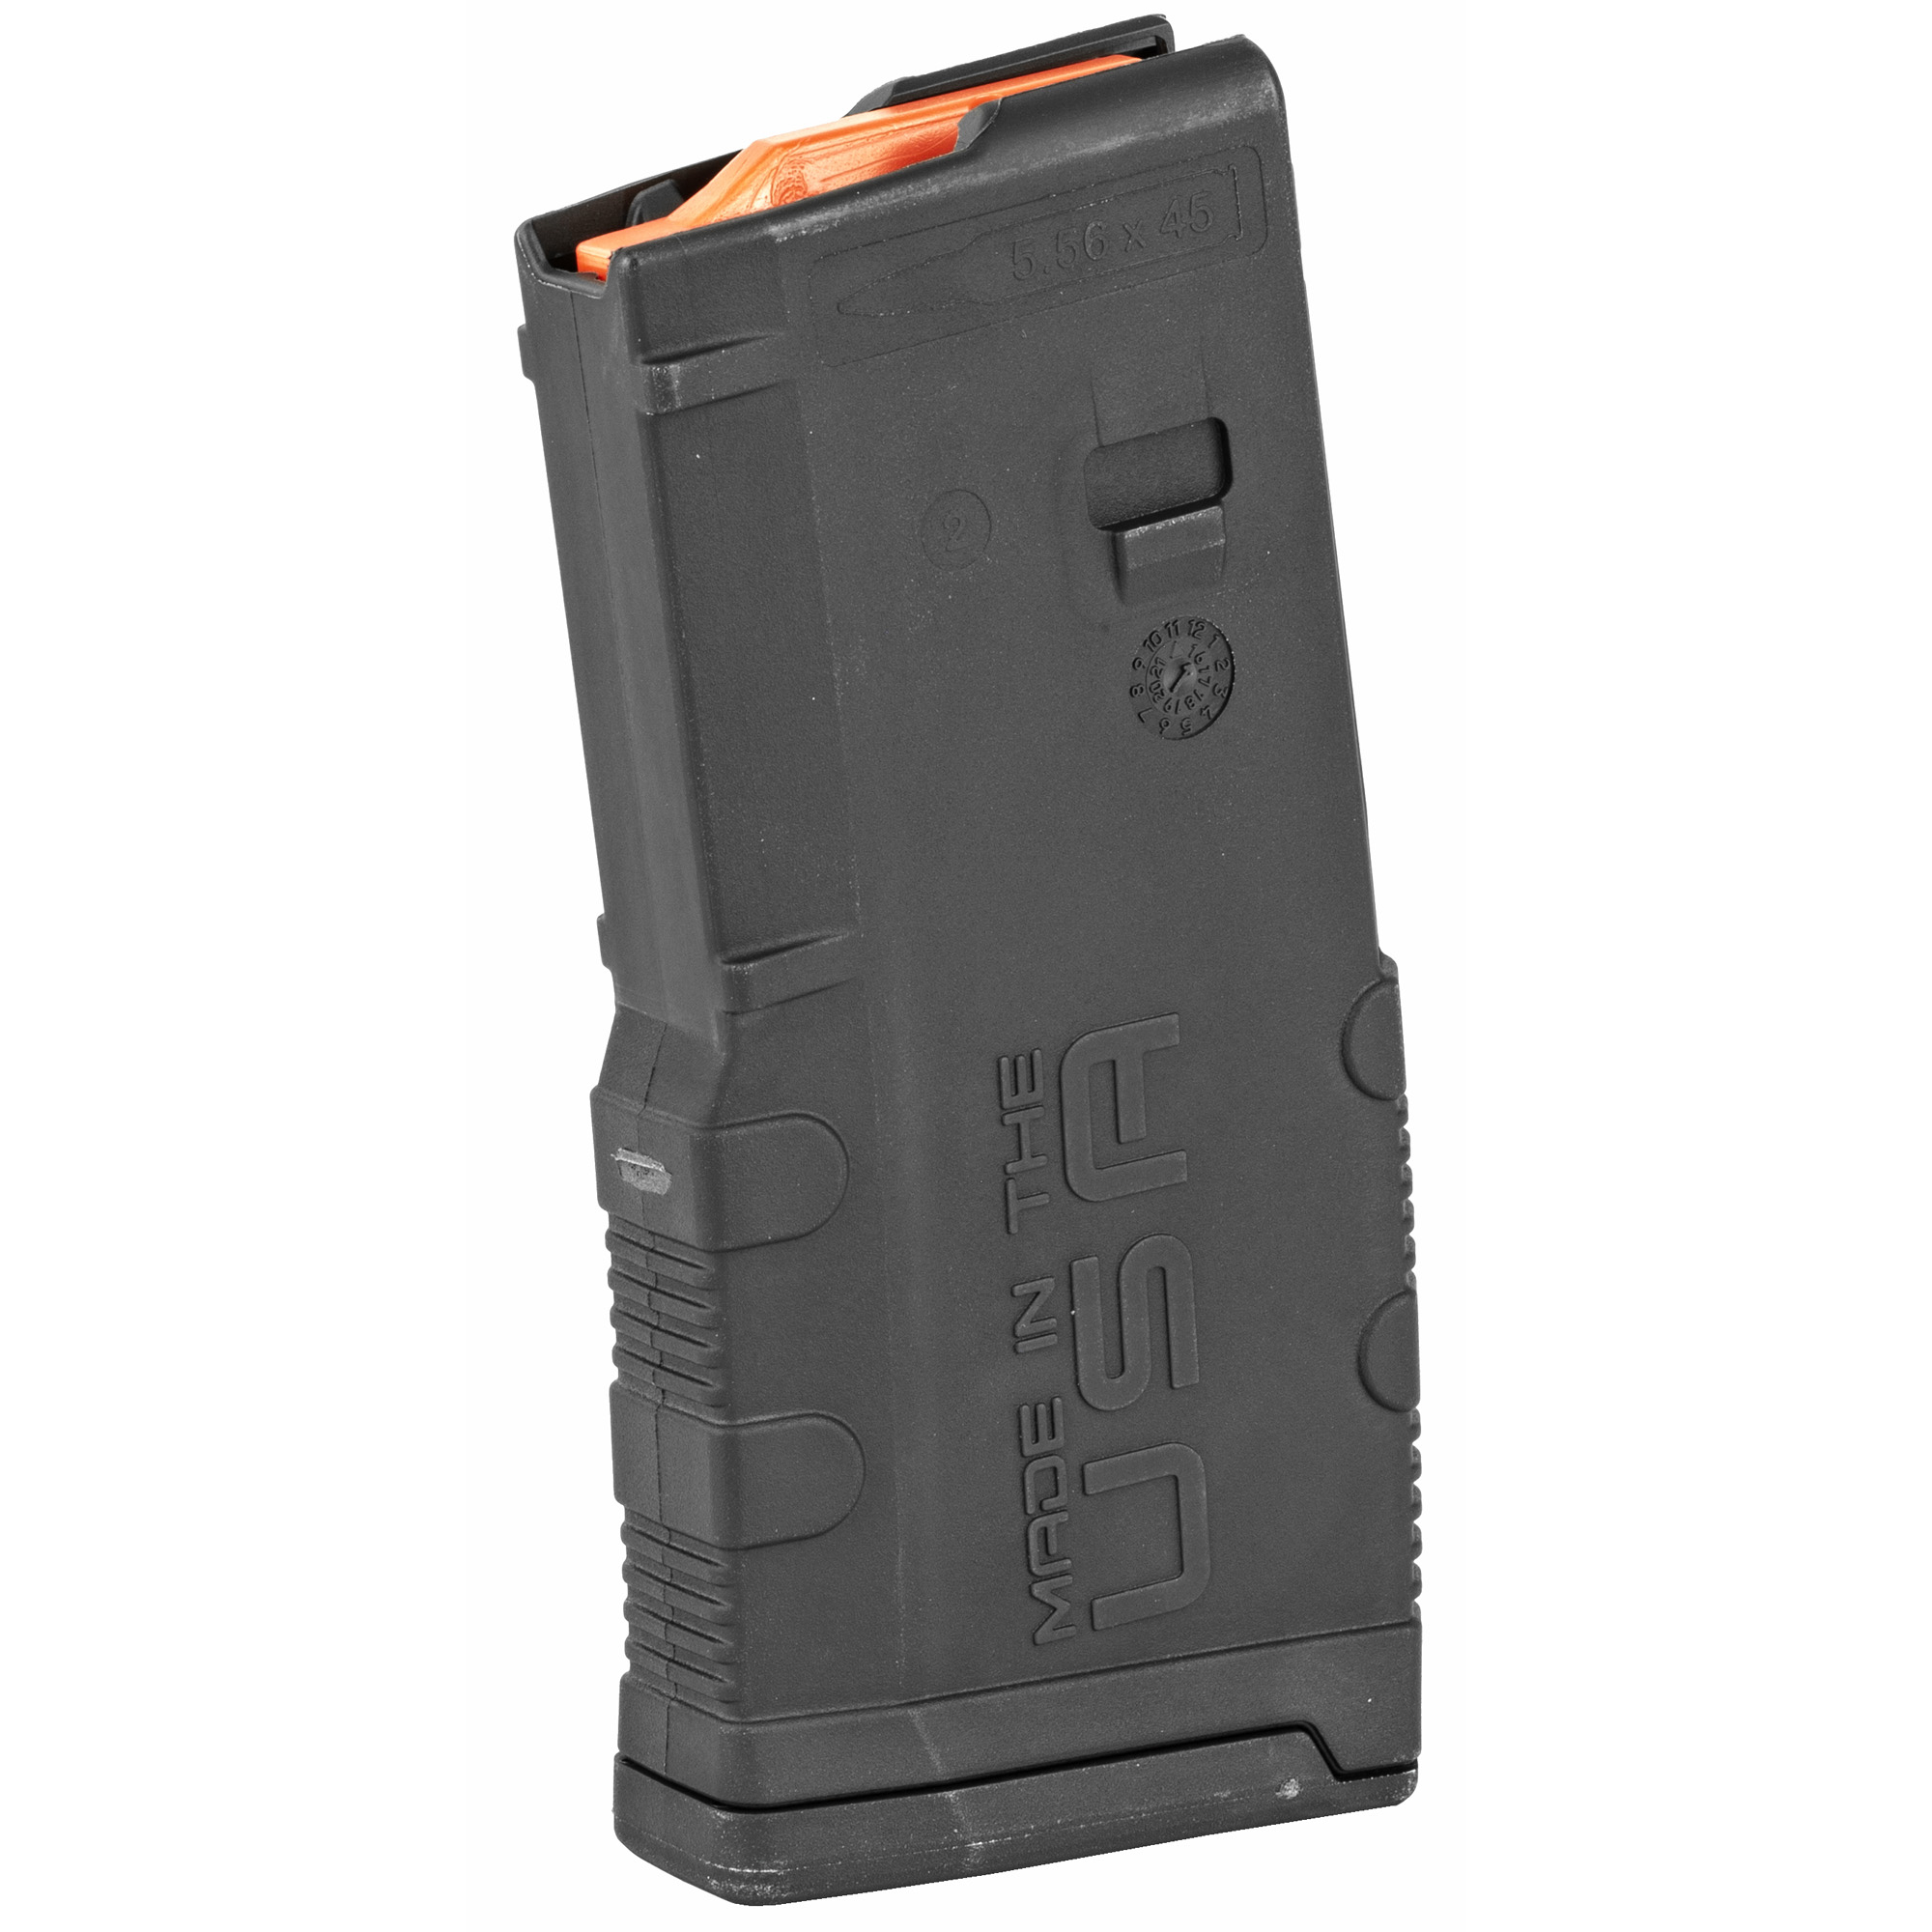 """The Amend2 20-round magazine is a sturdy"""" reliable AR15/M4/M16 magazine made of advanced polymer material. It is light"""" durable and an excellent alternative to the standard M4/M16 USGI aluminum magazines. The 20 round body profile is ideal for added maneuverability and weapon handling."""